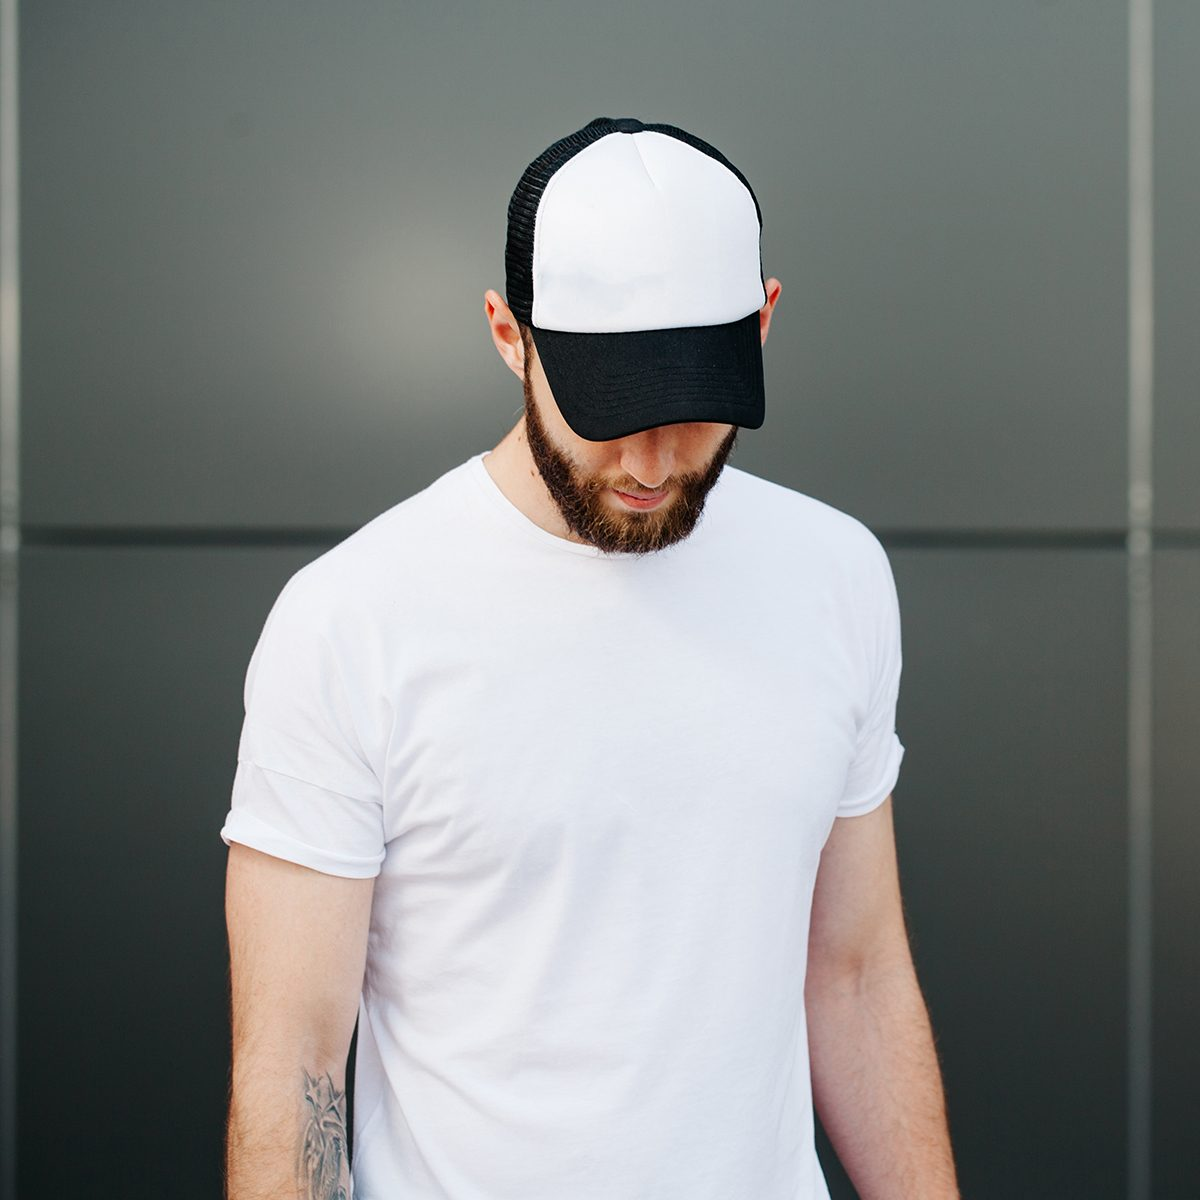 Hipster wearing white blank t-shirt and a cap